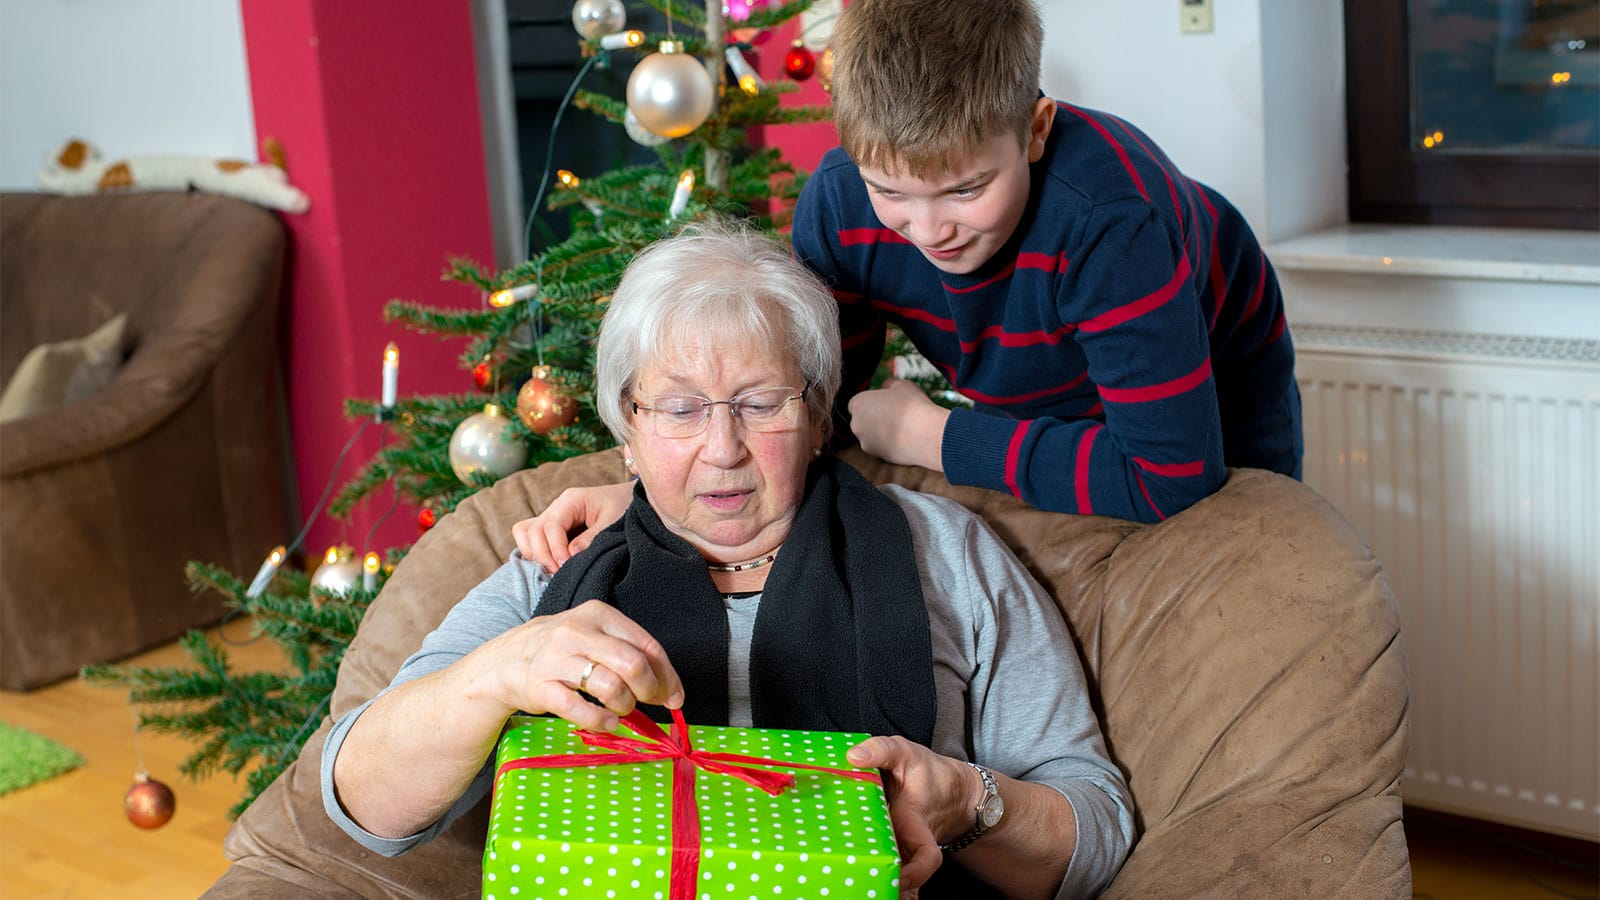 Grandmother opening a gift from her grandson.